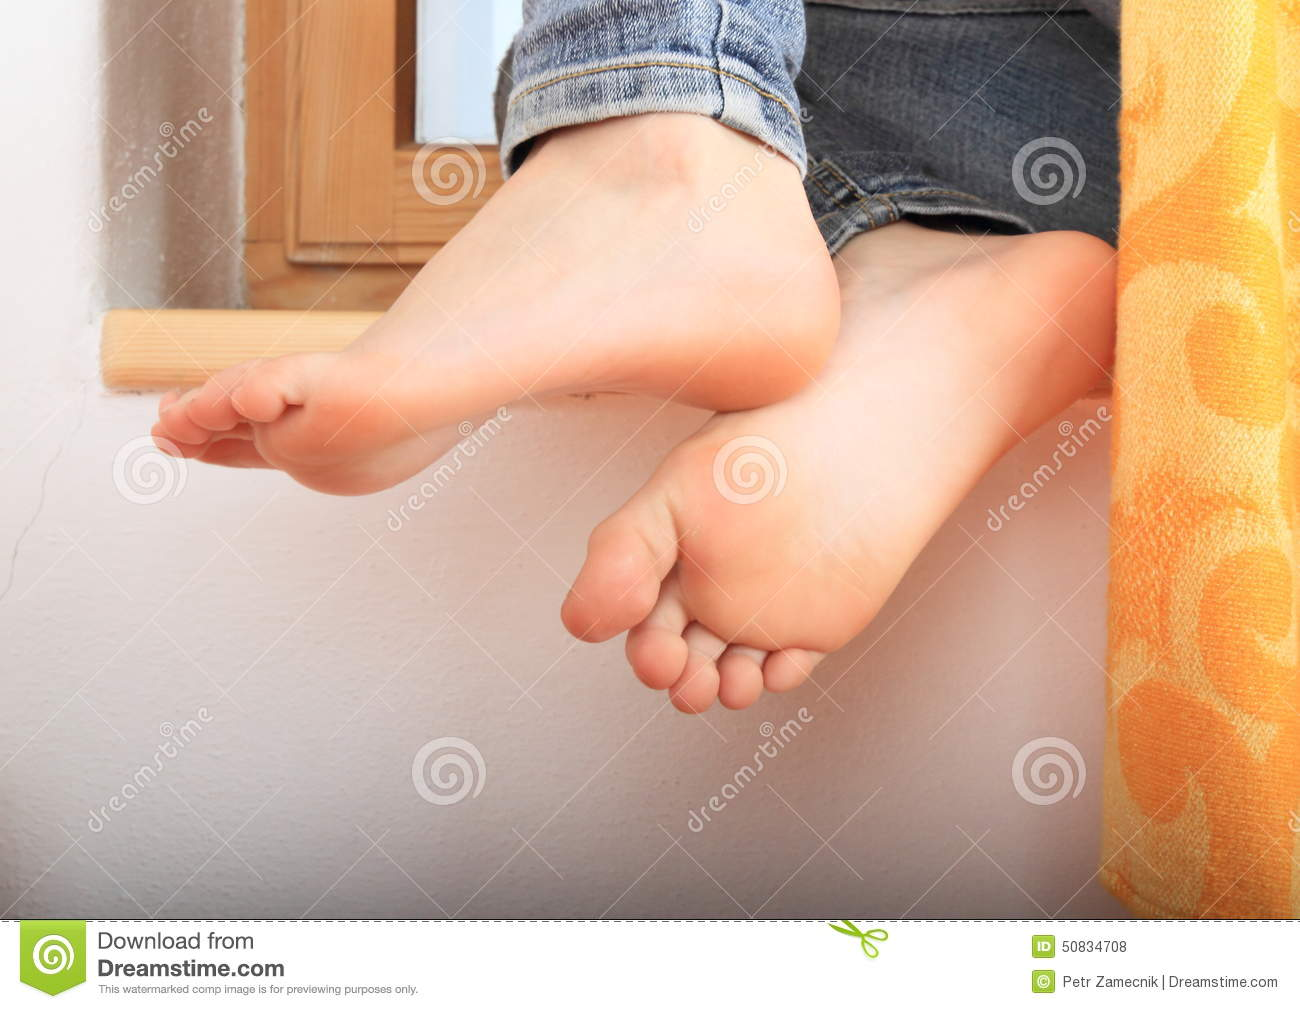 Leaning bare feet. Bare feet of a little girl - child leaning on white wall dbd3b03a8